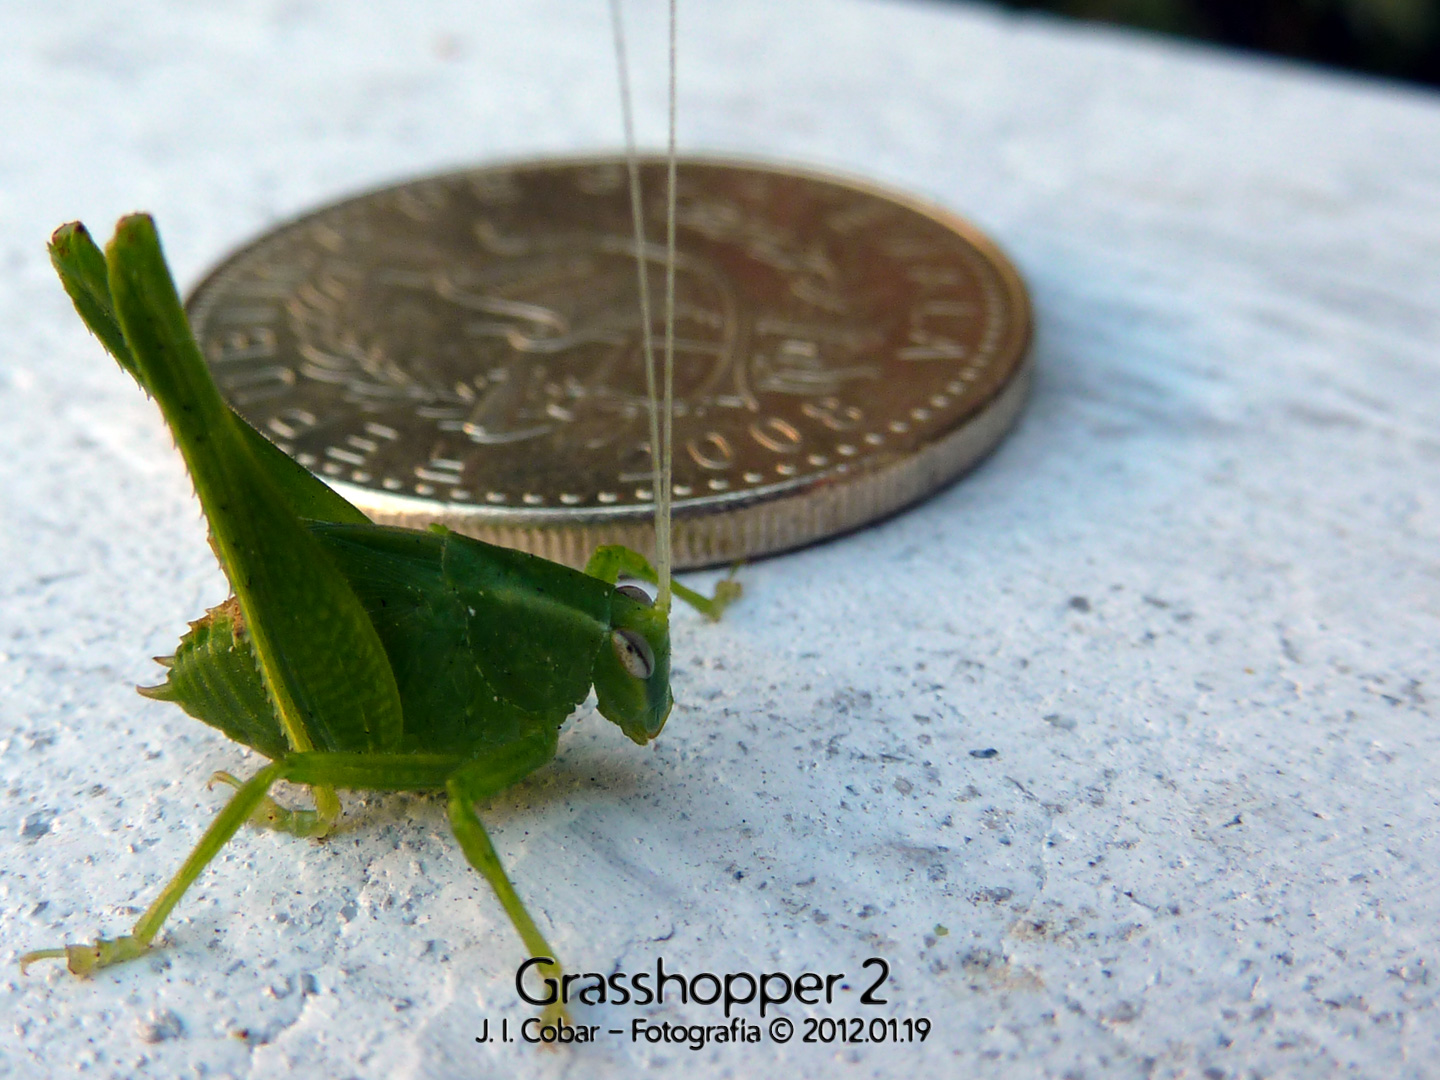 Grasshopper and coin